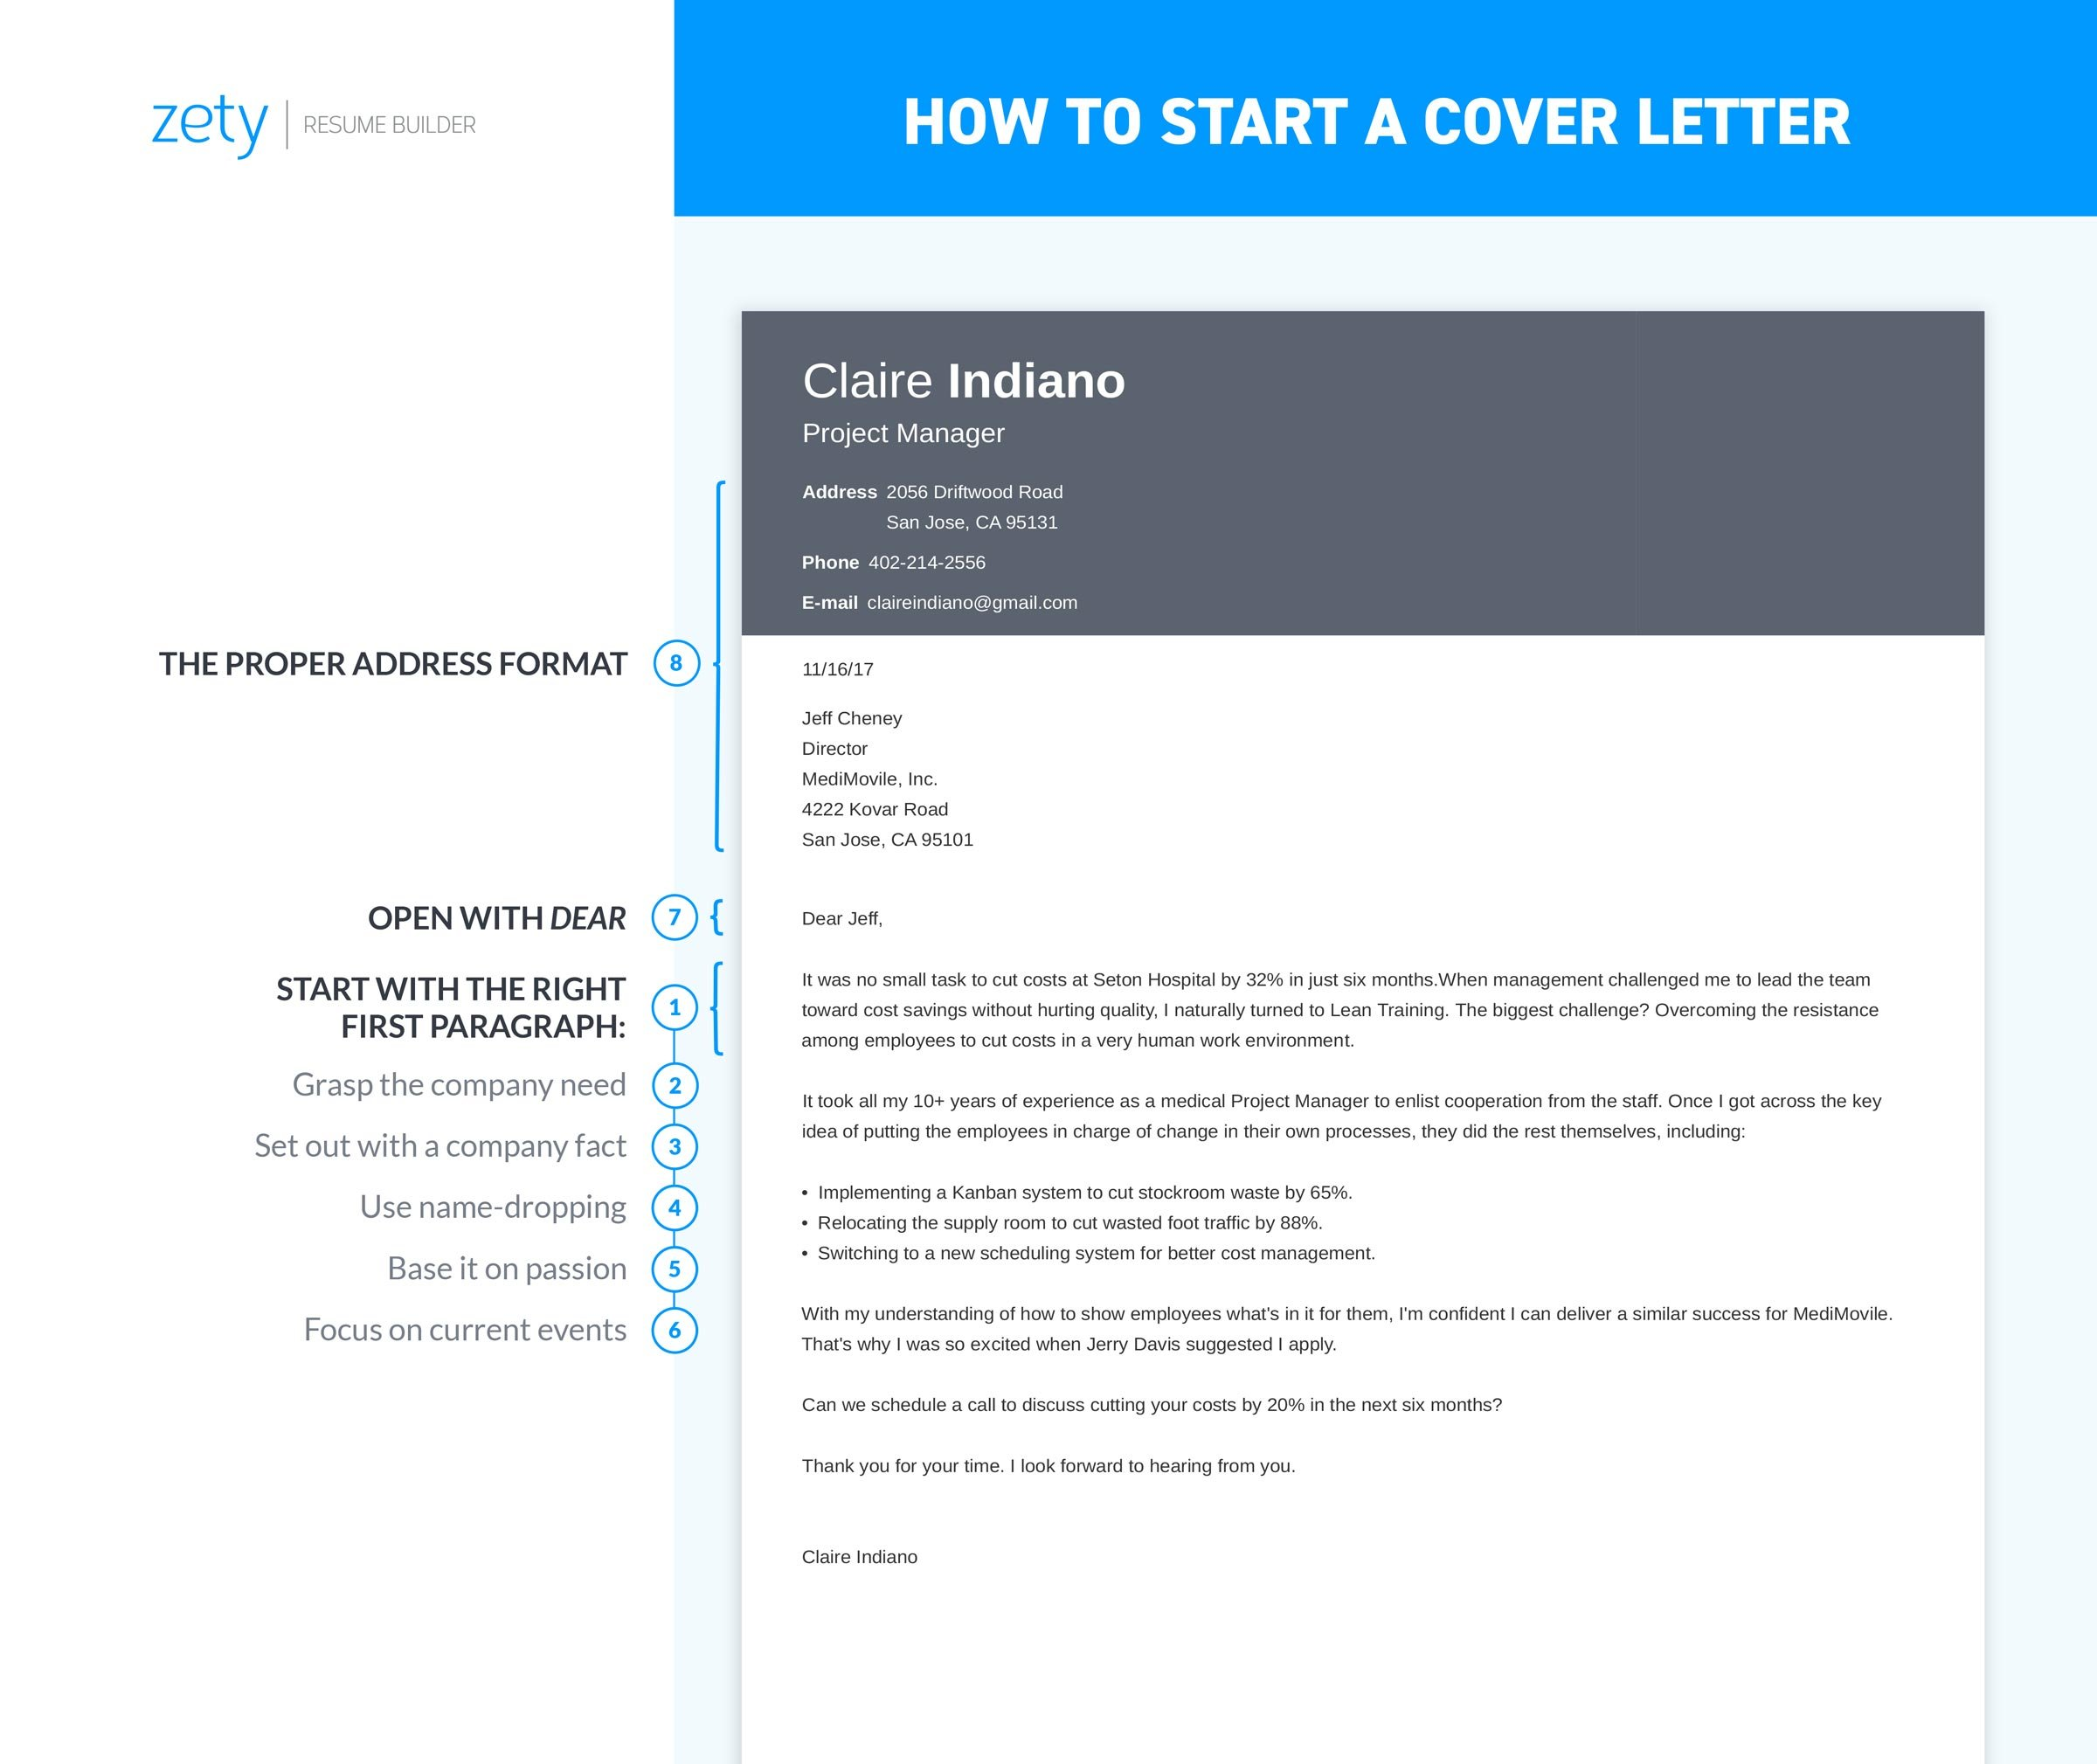 starting a cover letter with a quote